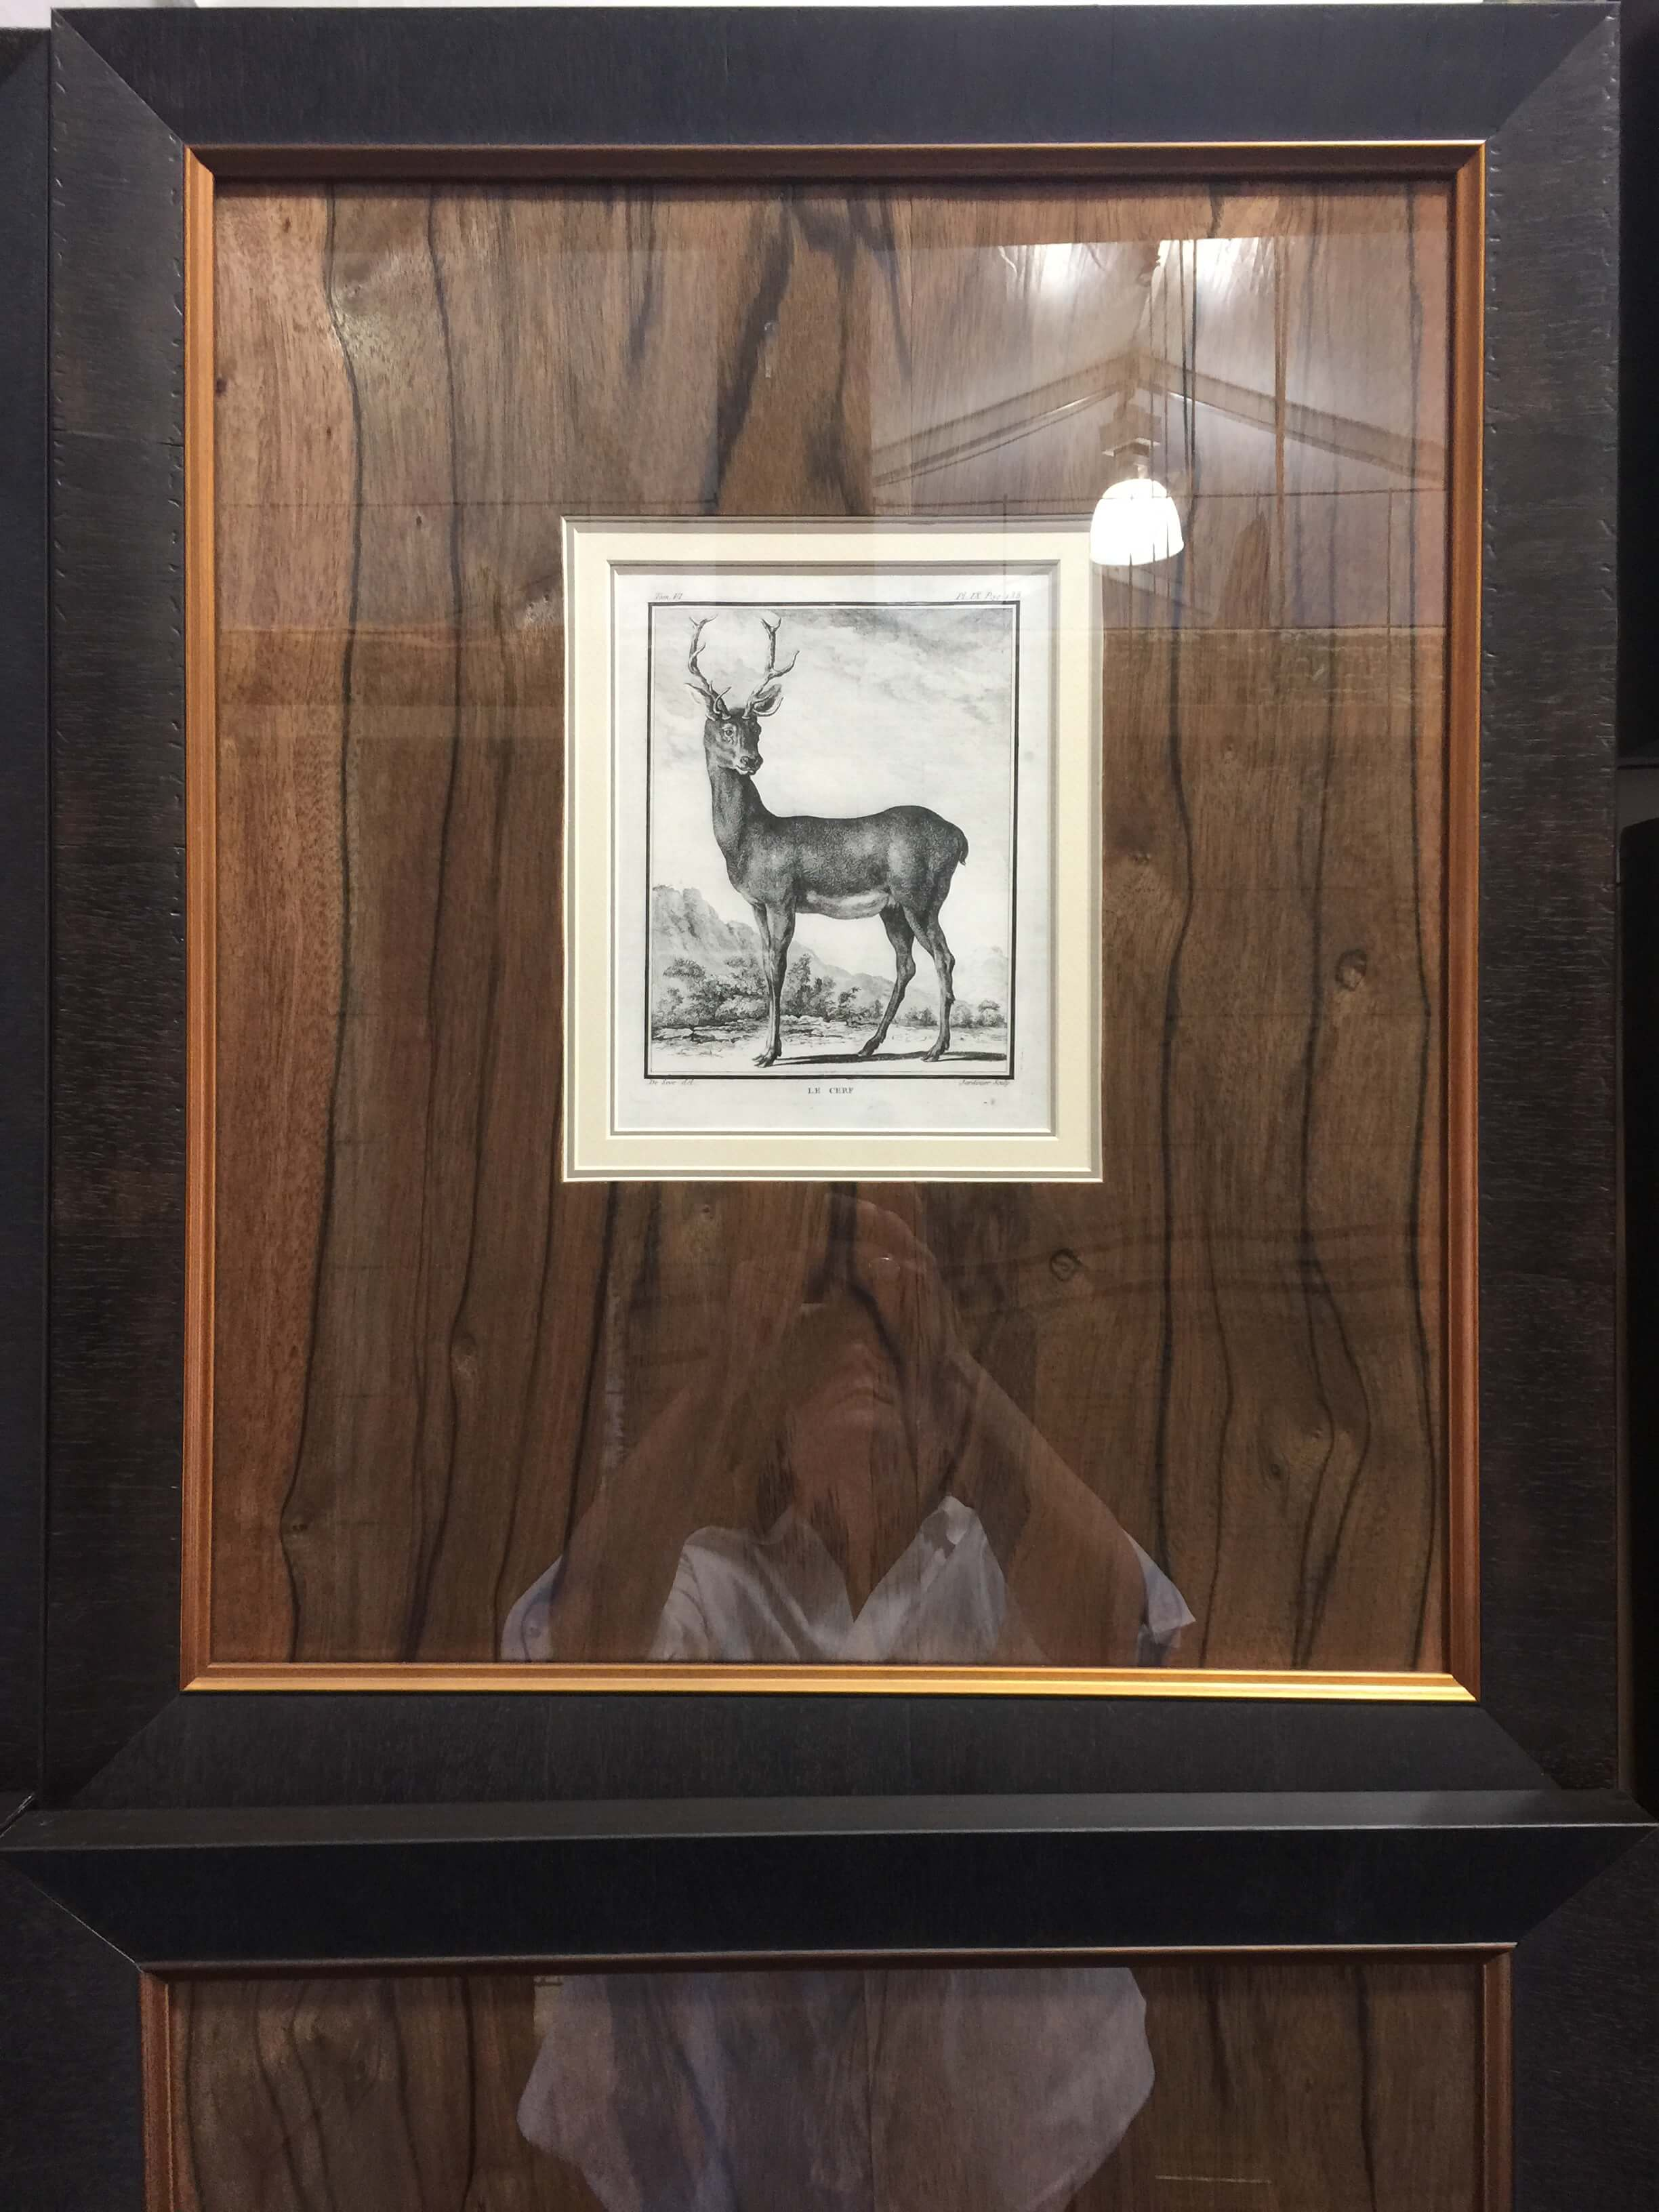 Walnut wood mat in framing by Michael Paul Designs seen at Round Top, TX at Arbor Antiques #framing #walnut #roundtop